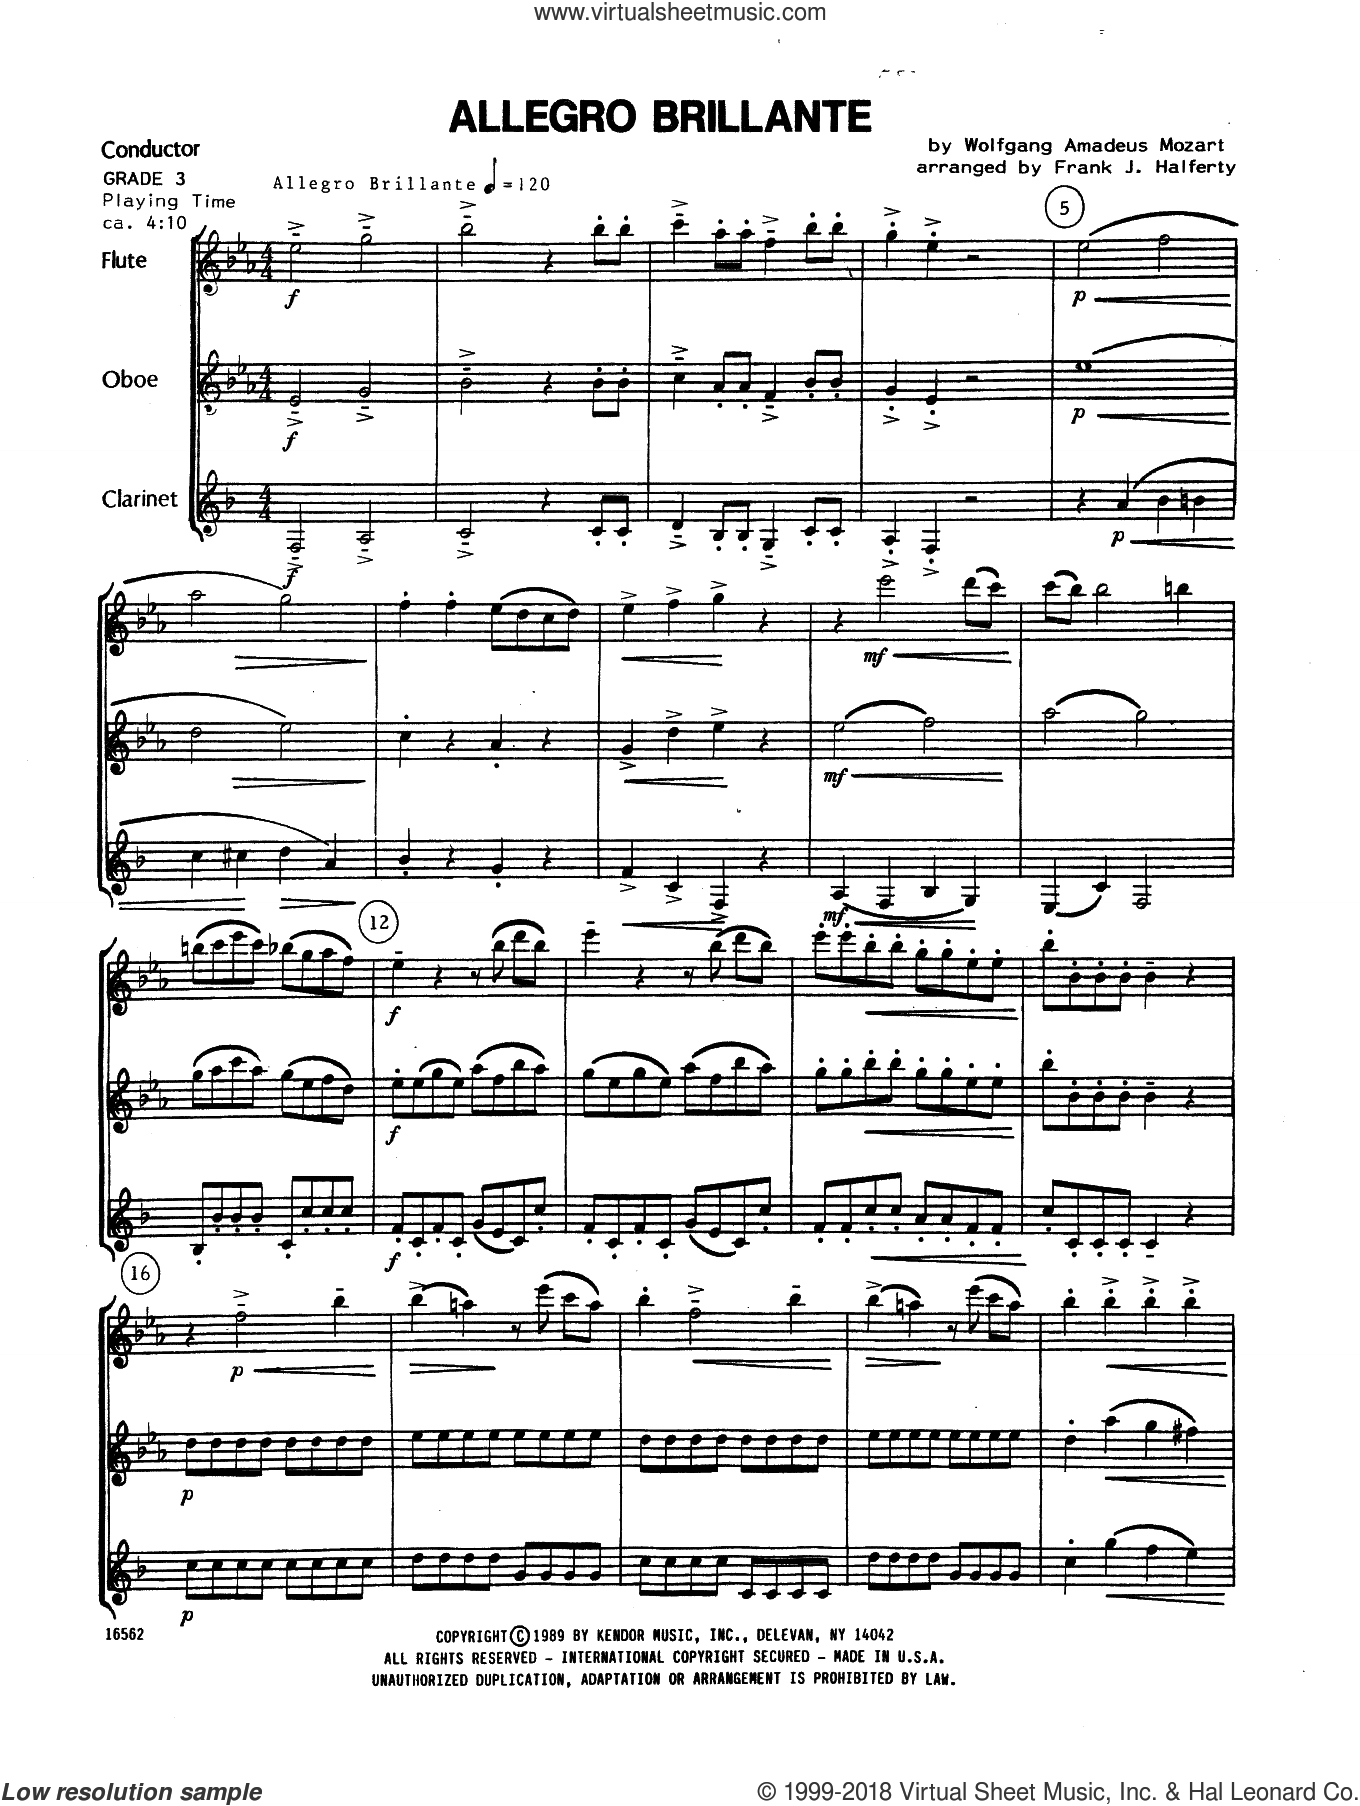 Allegro Brillante (COMPLETE) sheet music for wind trio by Wolfgang Amadeus Mozart and Frank J. Halferty, classical score, intermediate